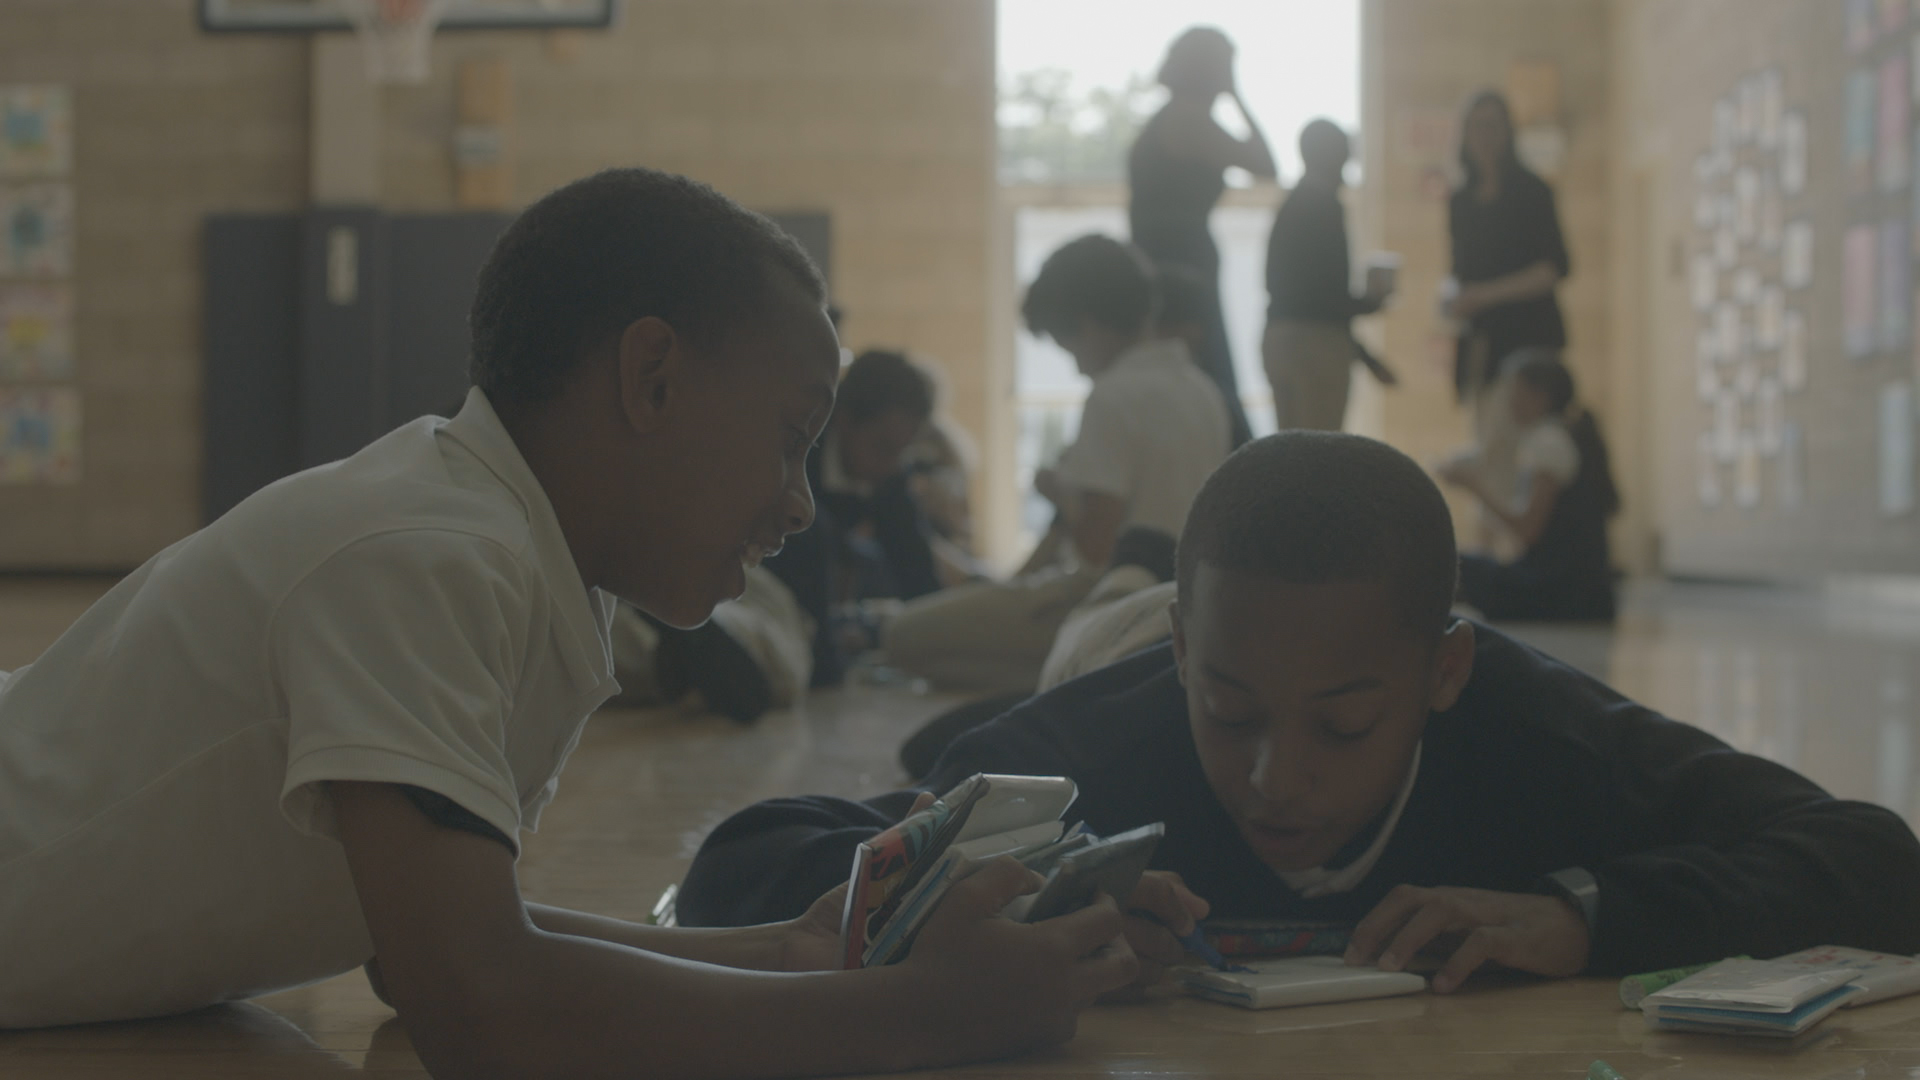 Male participants utilize Kleenex® Care kits to share care with their peers. Photo Credit: Kleenex® brand.